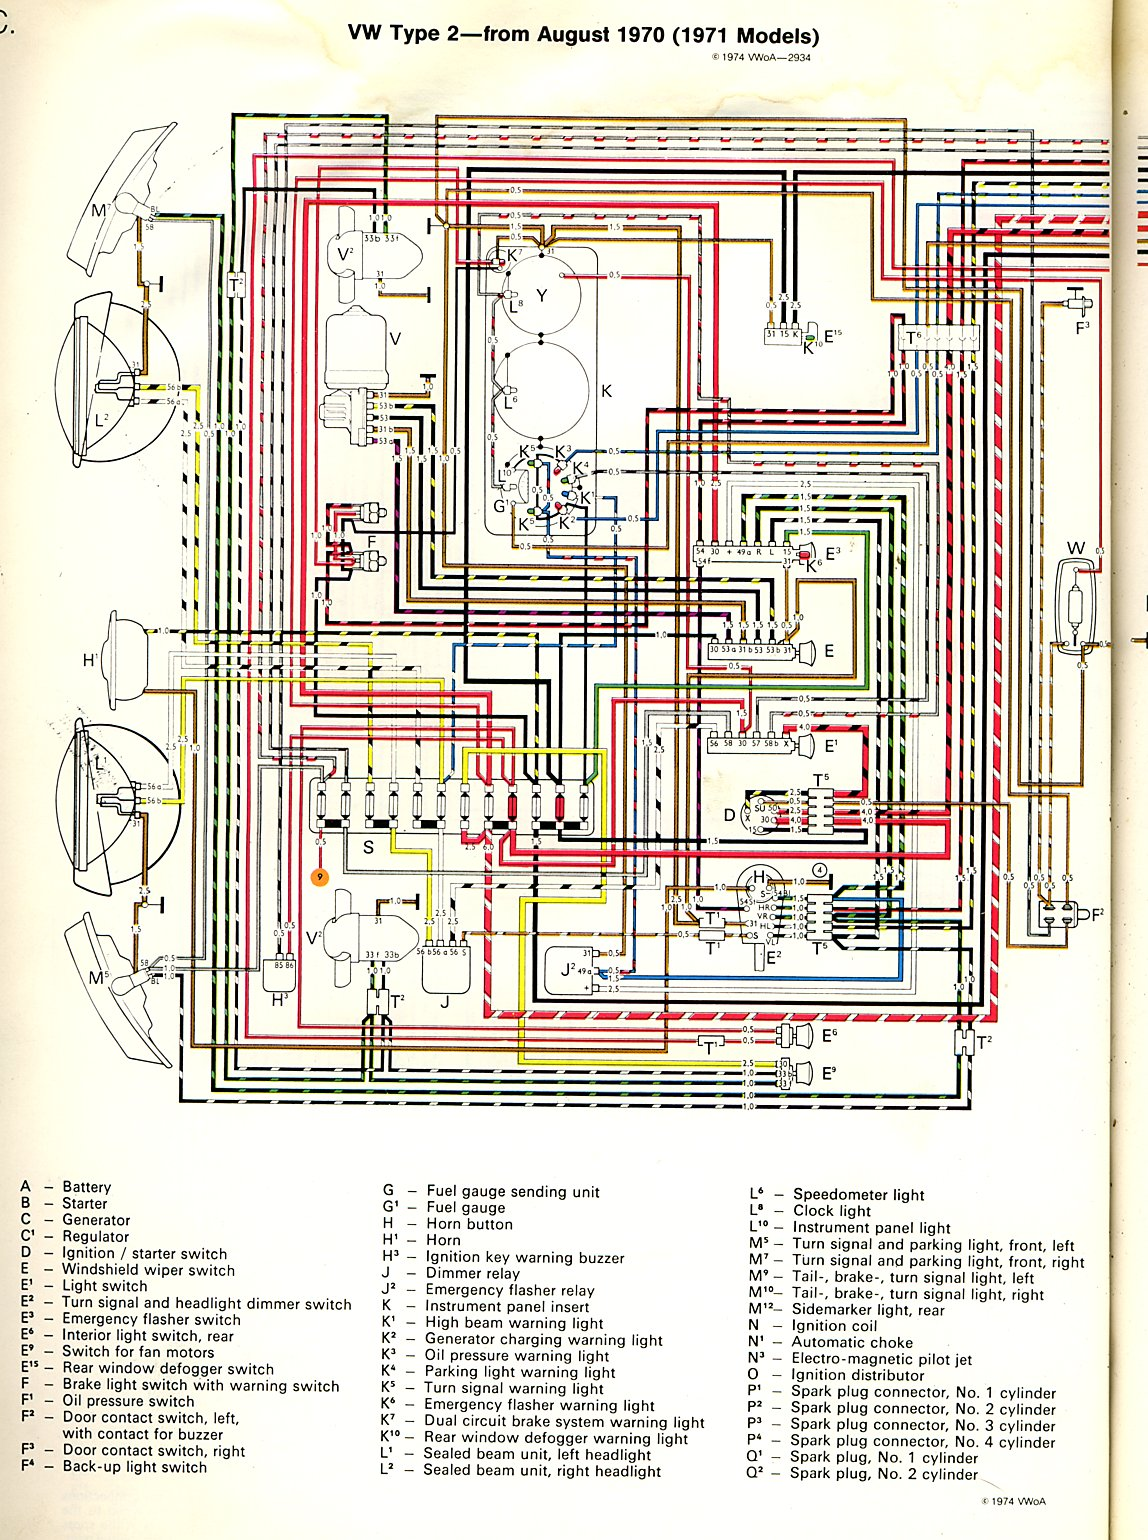 1975 volkswagen bus fuse box illustration of wiring diagram u2022 rh  davisfamilyreunion us 1998 VW Cabrio Fuse Diagram 2005 VW Golf Relay Diagram